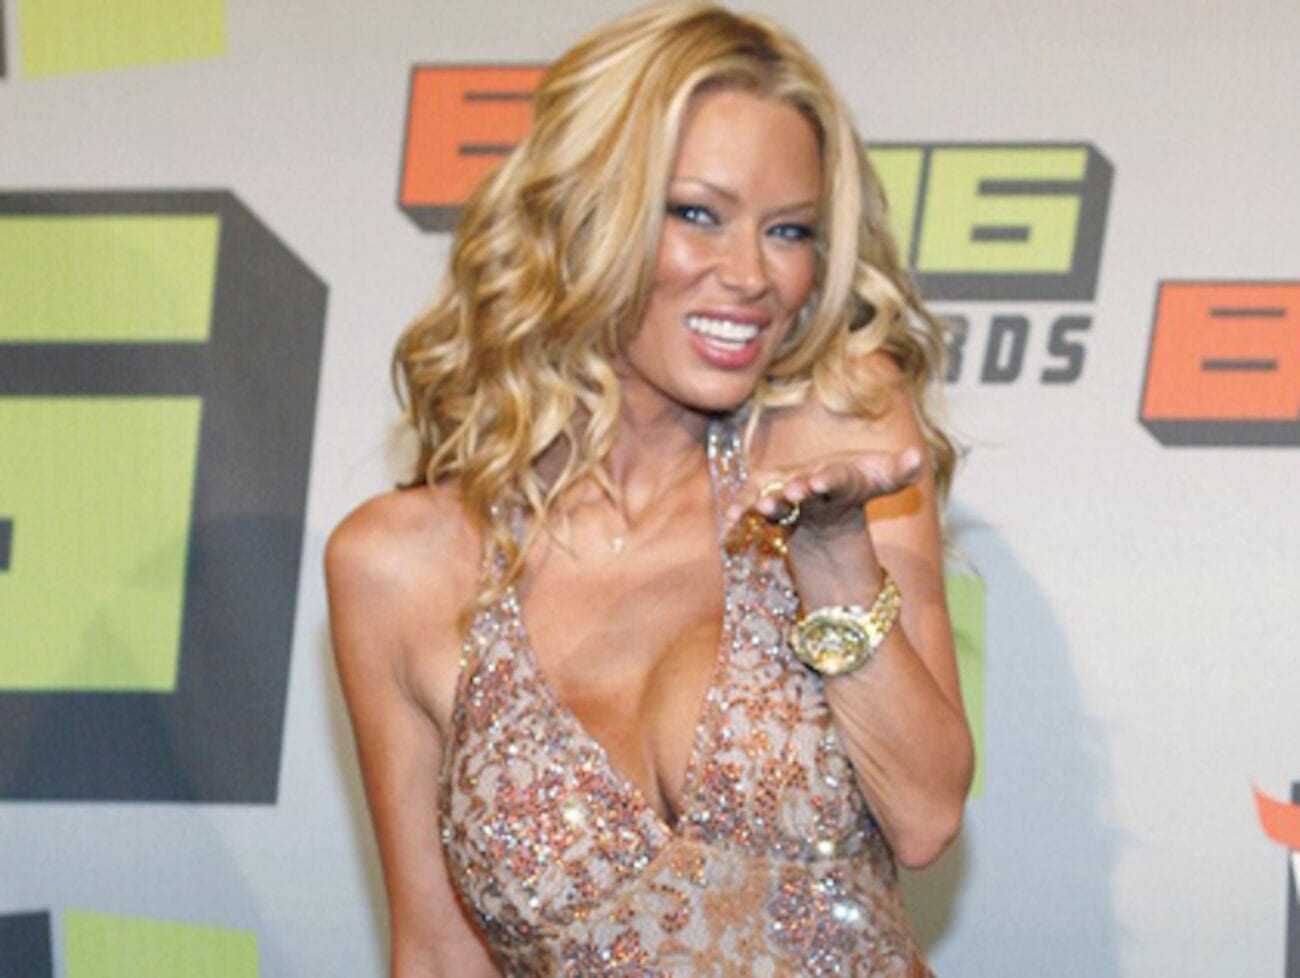 Ex-porn star Jenna Jameson speaks out about her experience with abuse & sex trafficking – the porn industry's long history of sexual exploitation exposed.